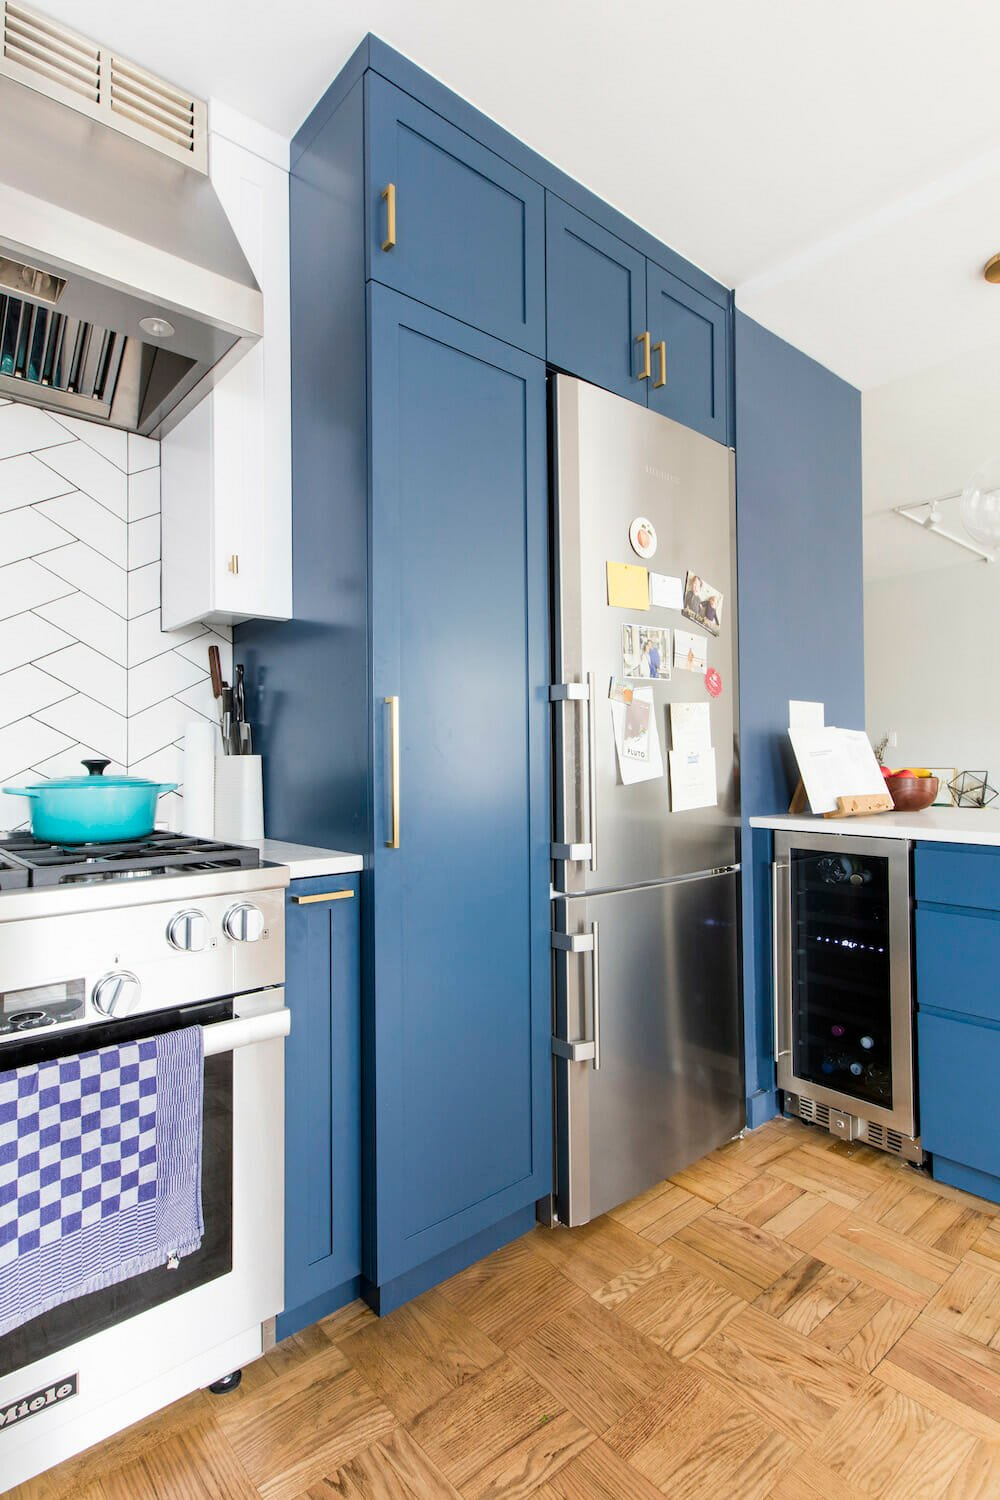 Image of a kitchen with a small wine fridge in corner